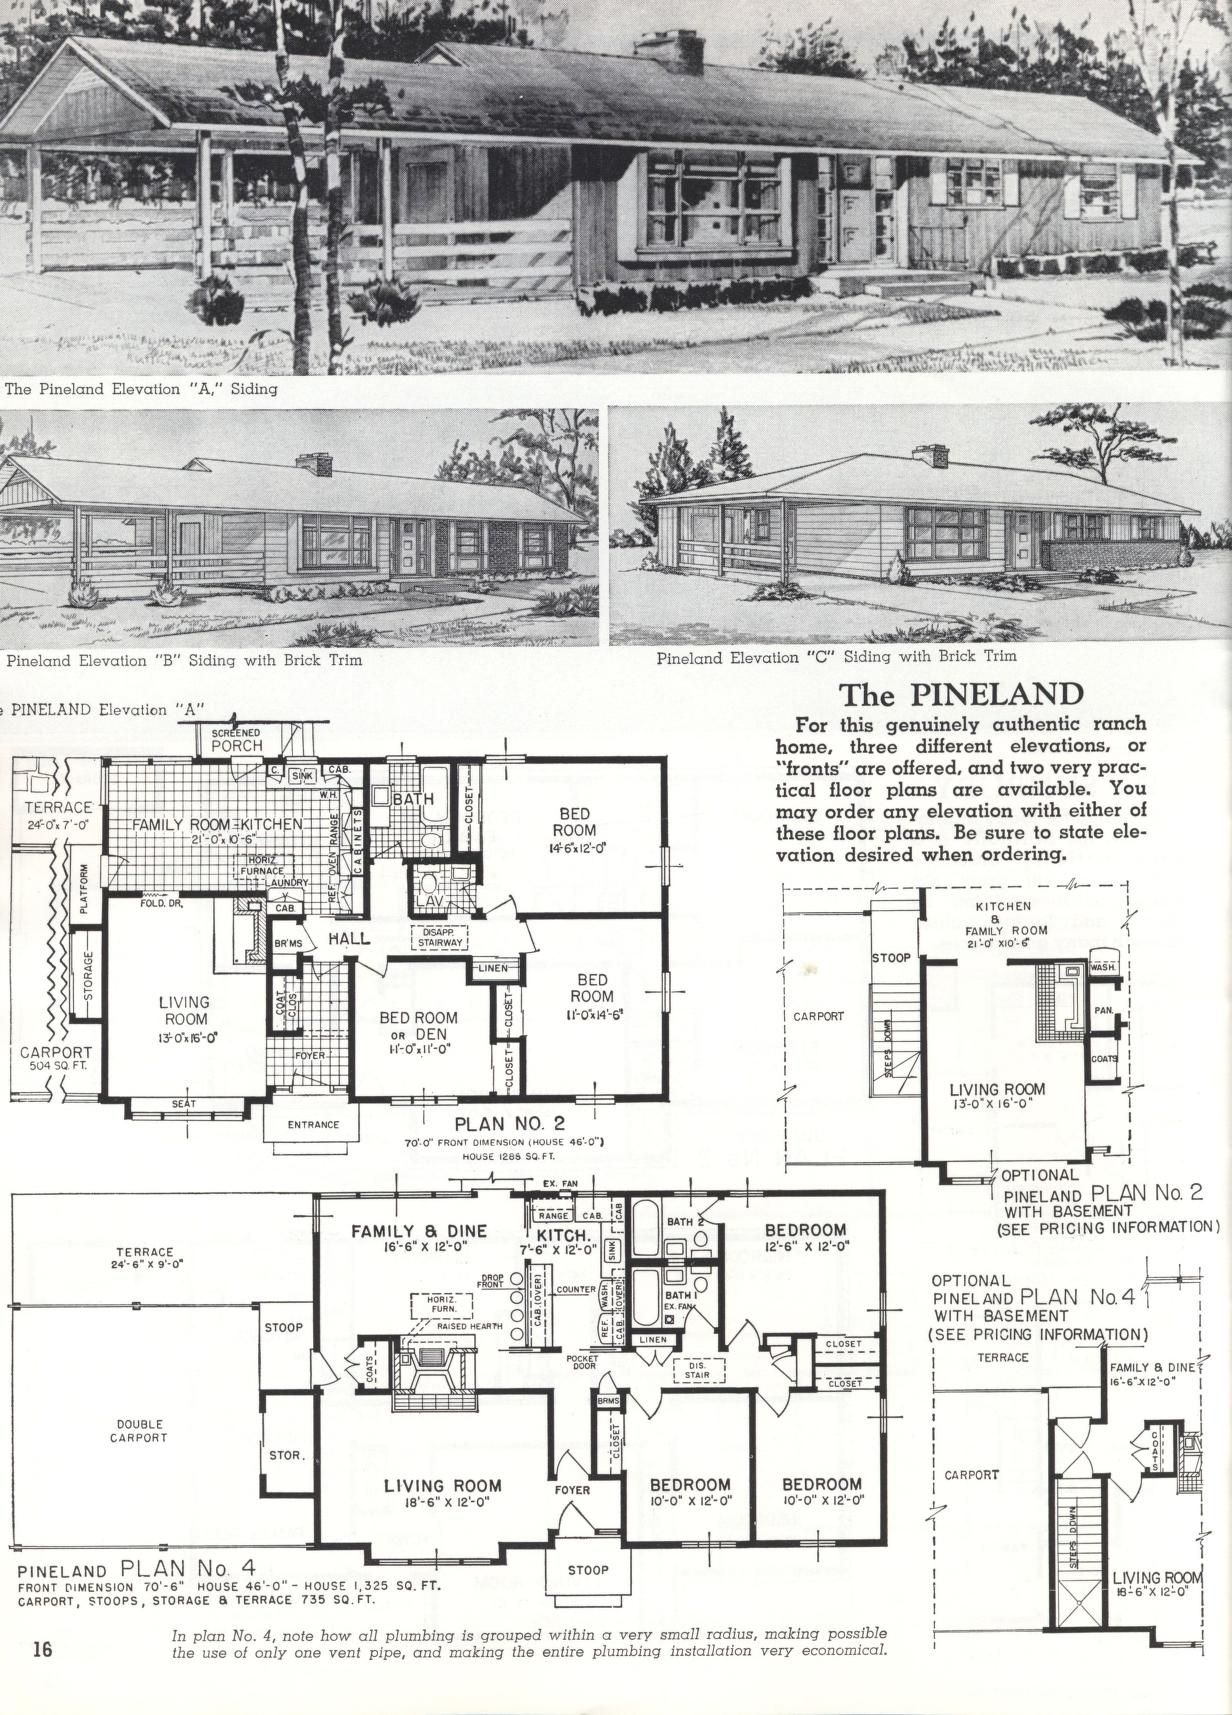 ae428591dfbfd2c6e6d7316180044d2f - Better Homes And Gardens Home Designer Suite 6